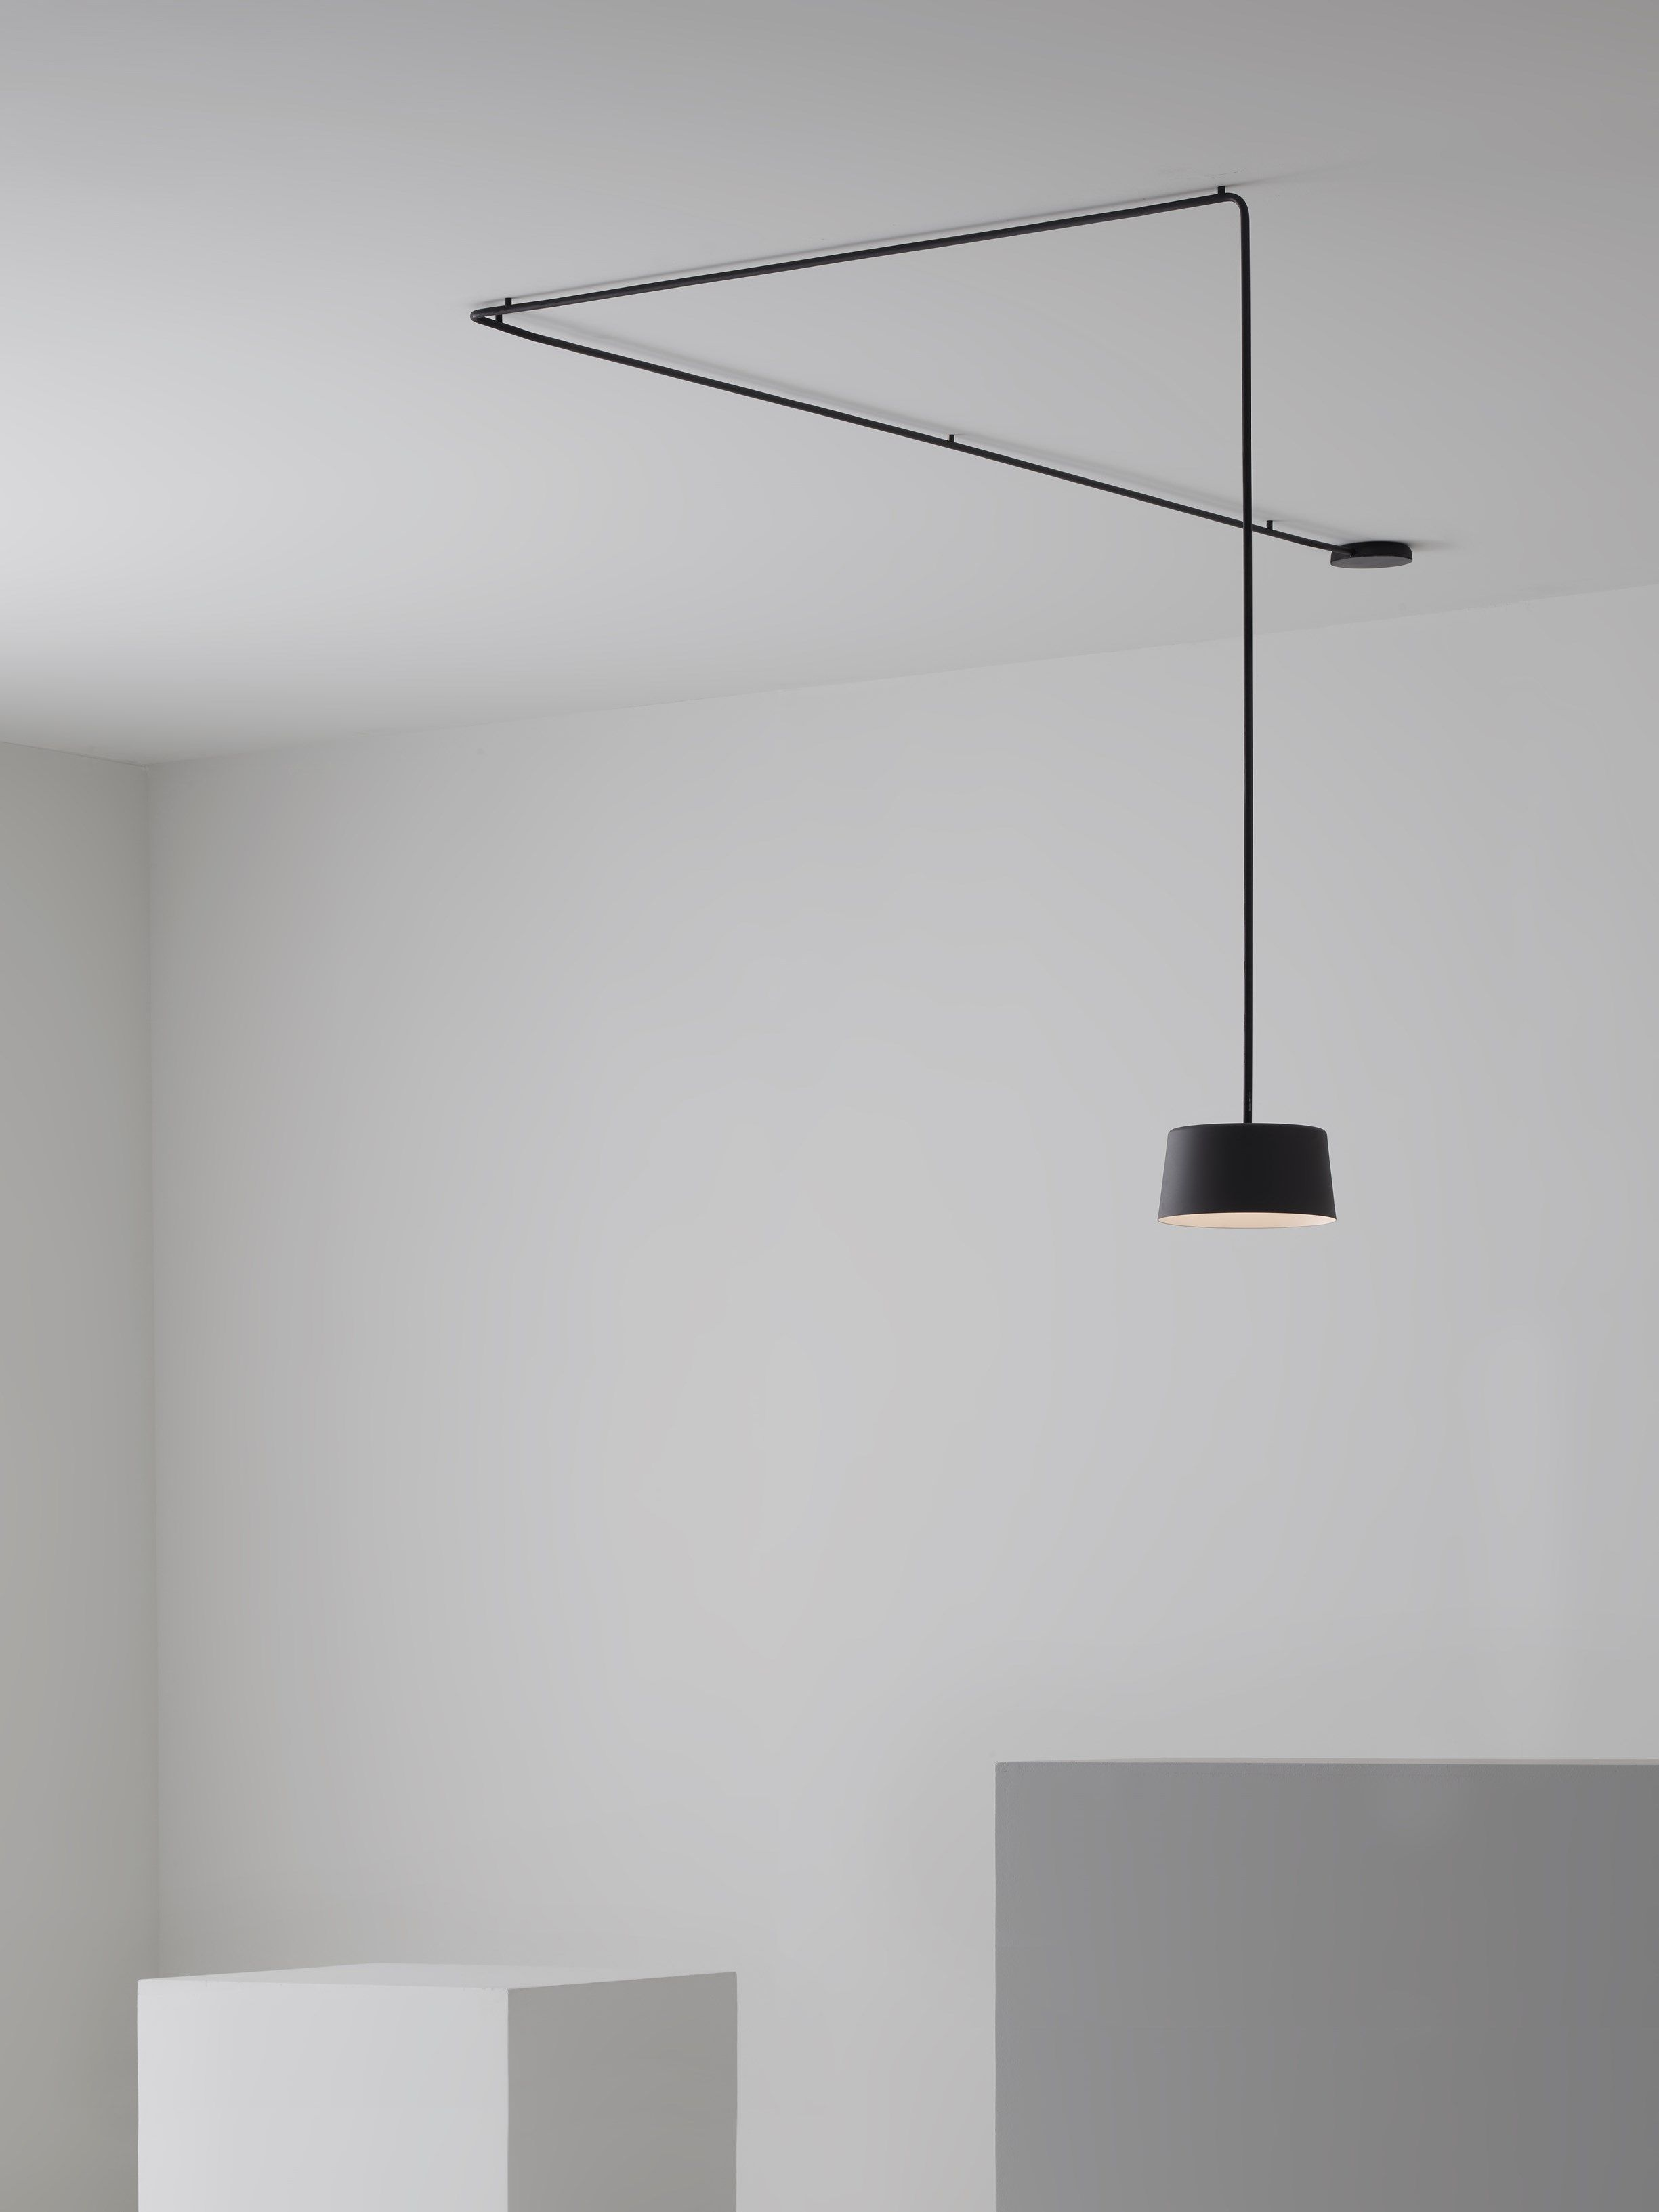 Pendant Lamp Collection By Vibia Design Ichiro